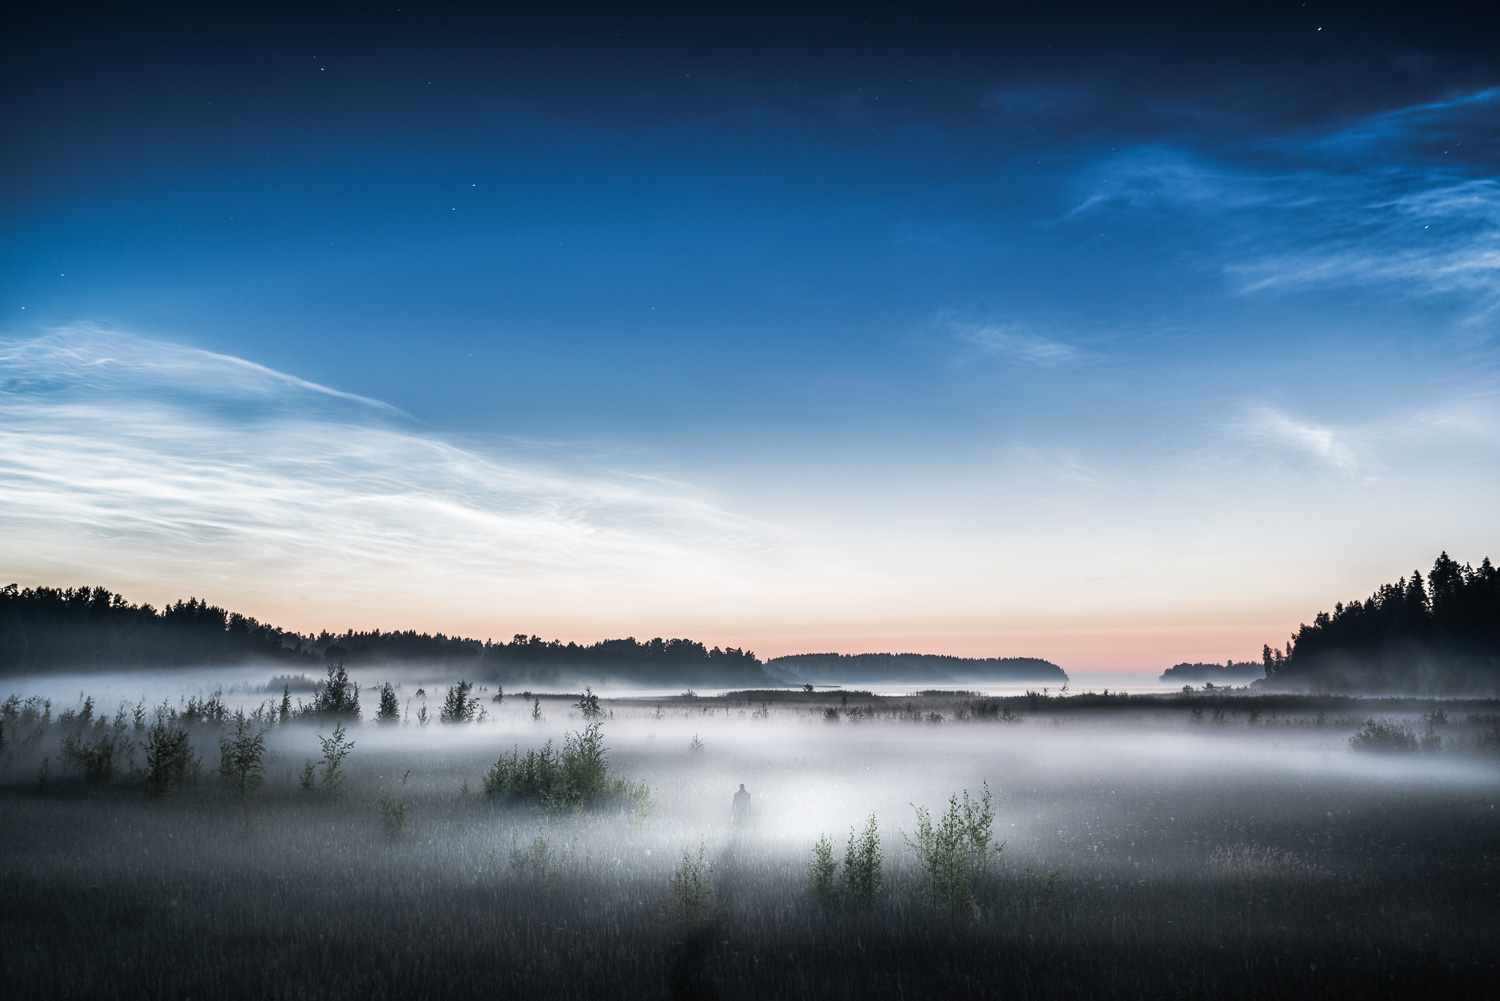 Mikko-Lagerstedt-Noctilucent-Night-II.jpg